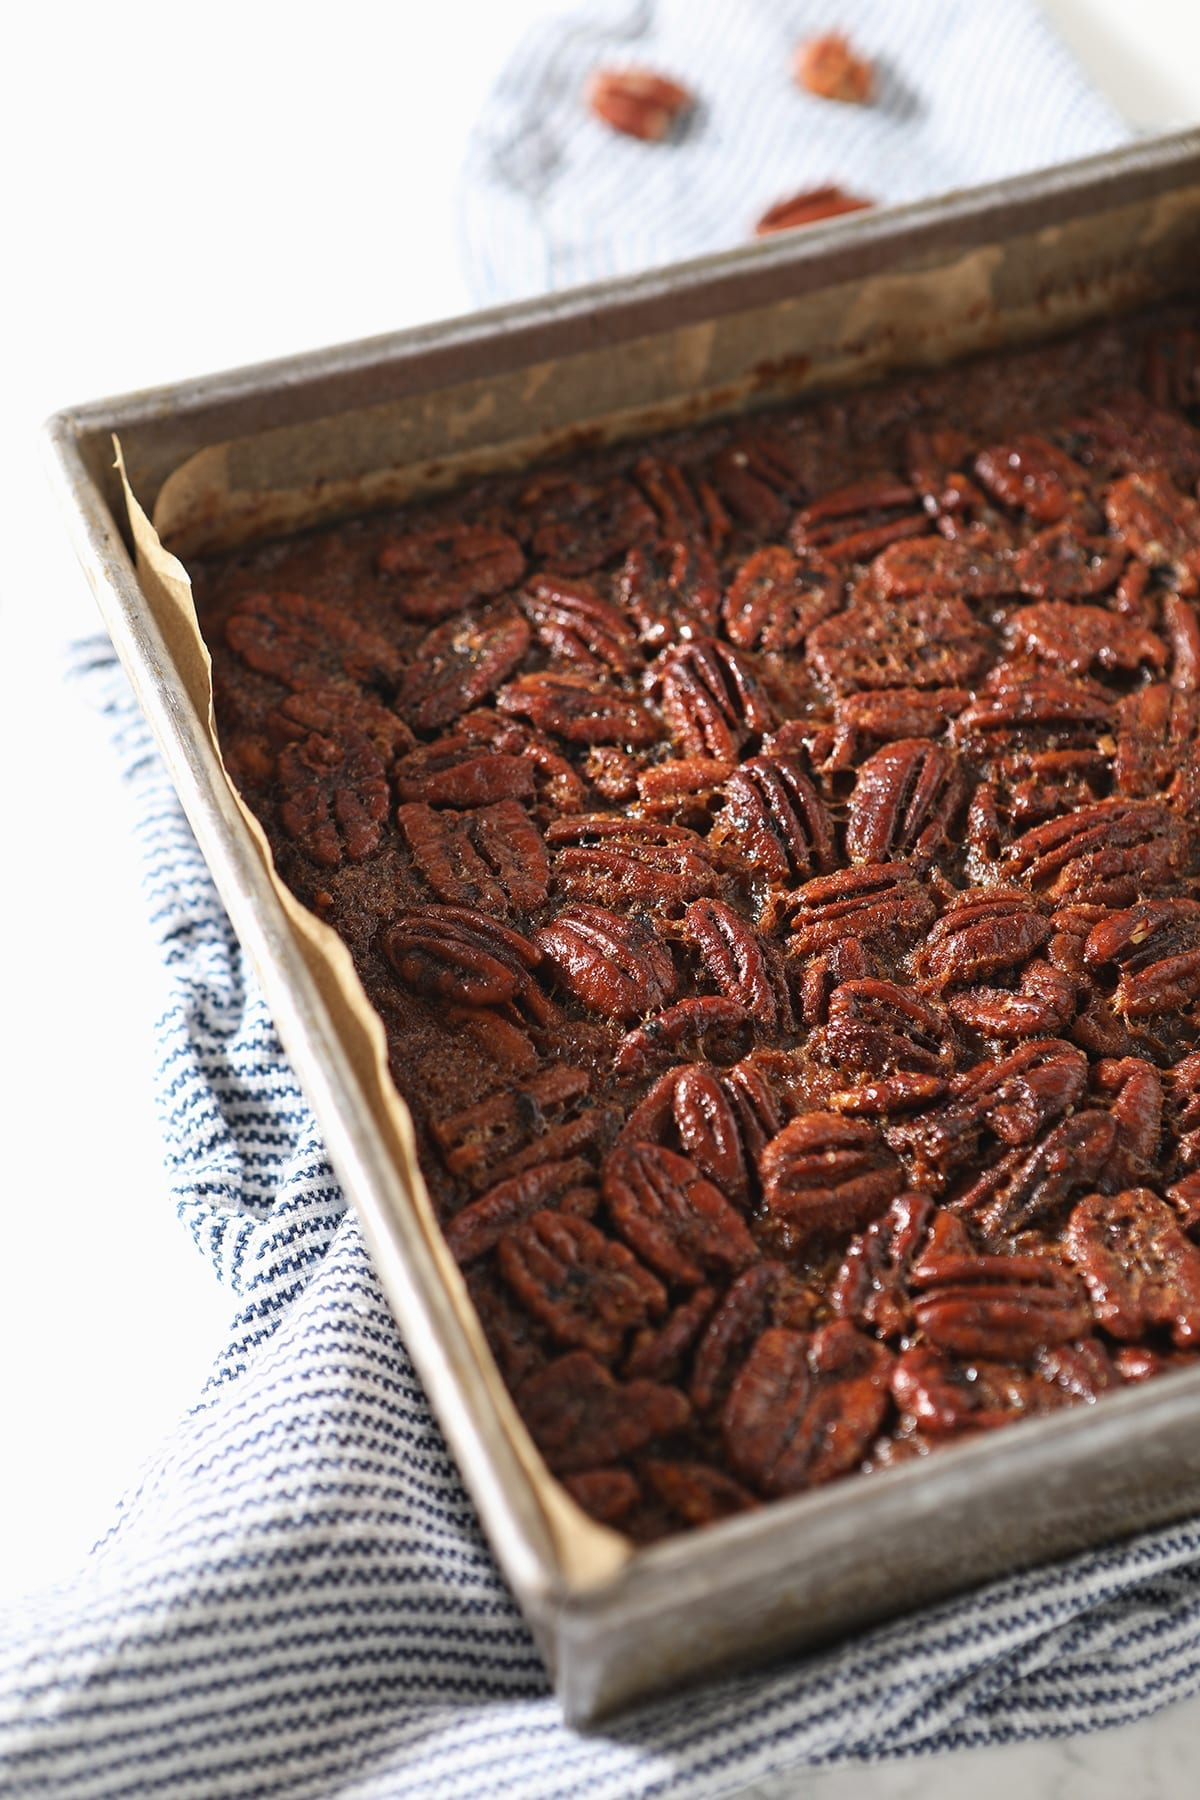 The Bourbon Pecan Pie Bars in a square baking dish after baking